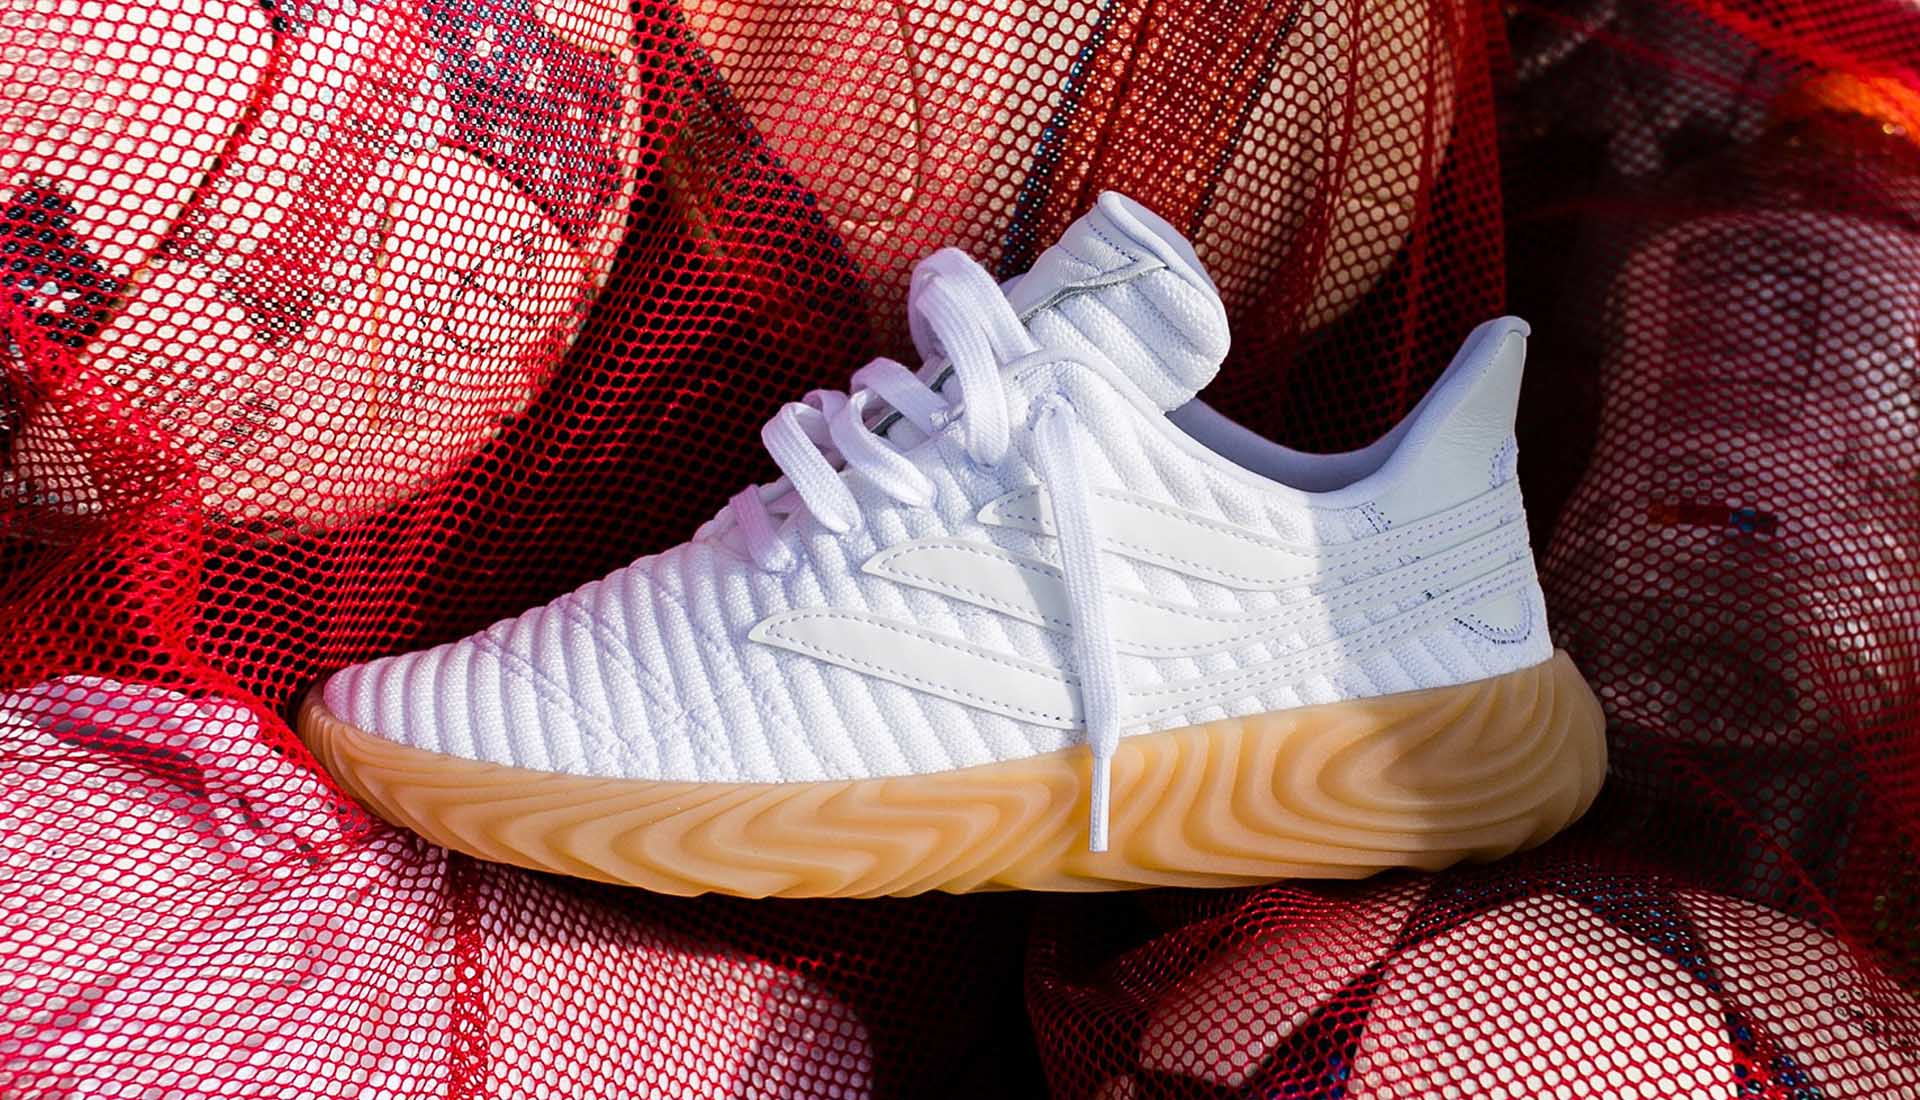 online store b2bce eabed adidas Drop The Sobakov Sneaker in White - SoccerBible.